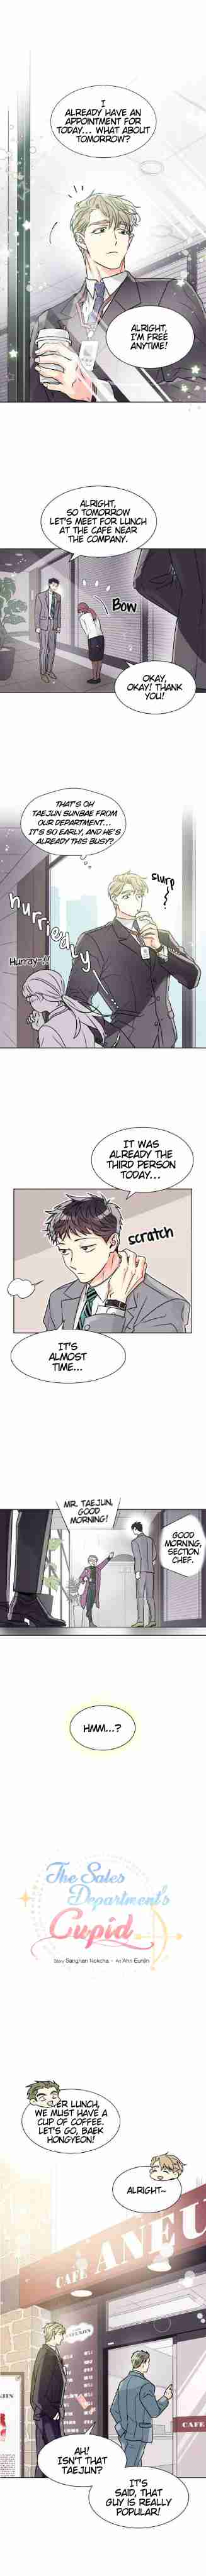 The Sales Department's Cupid Ch. 1